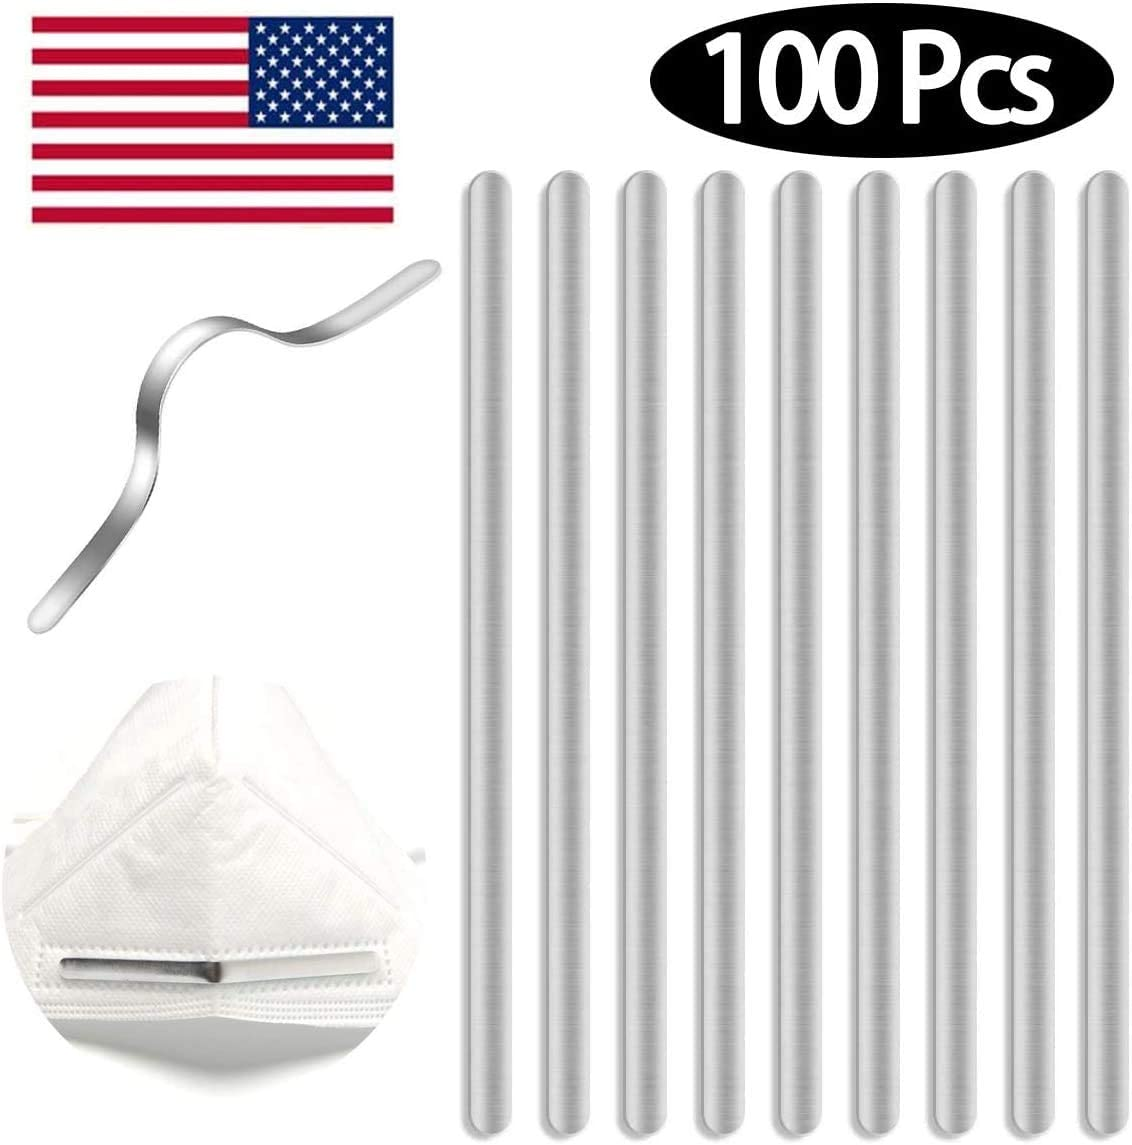 Nose Bridge Strips for Mask, 100 Pieces Aluminum Strips Nose Wire, Adjustable 90MM Metal Flat Nose Clips Wire for DIY Face Mask Making Accessories (100)